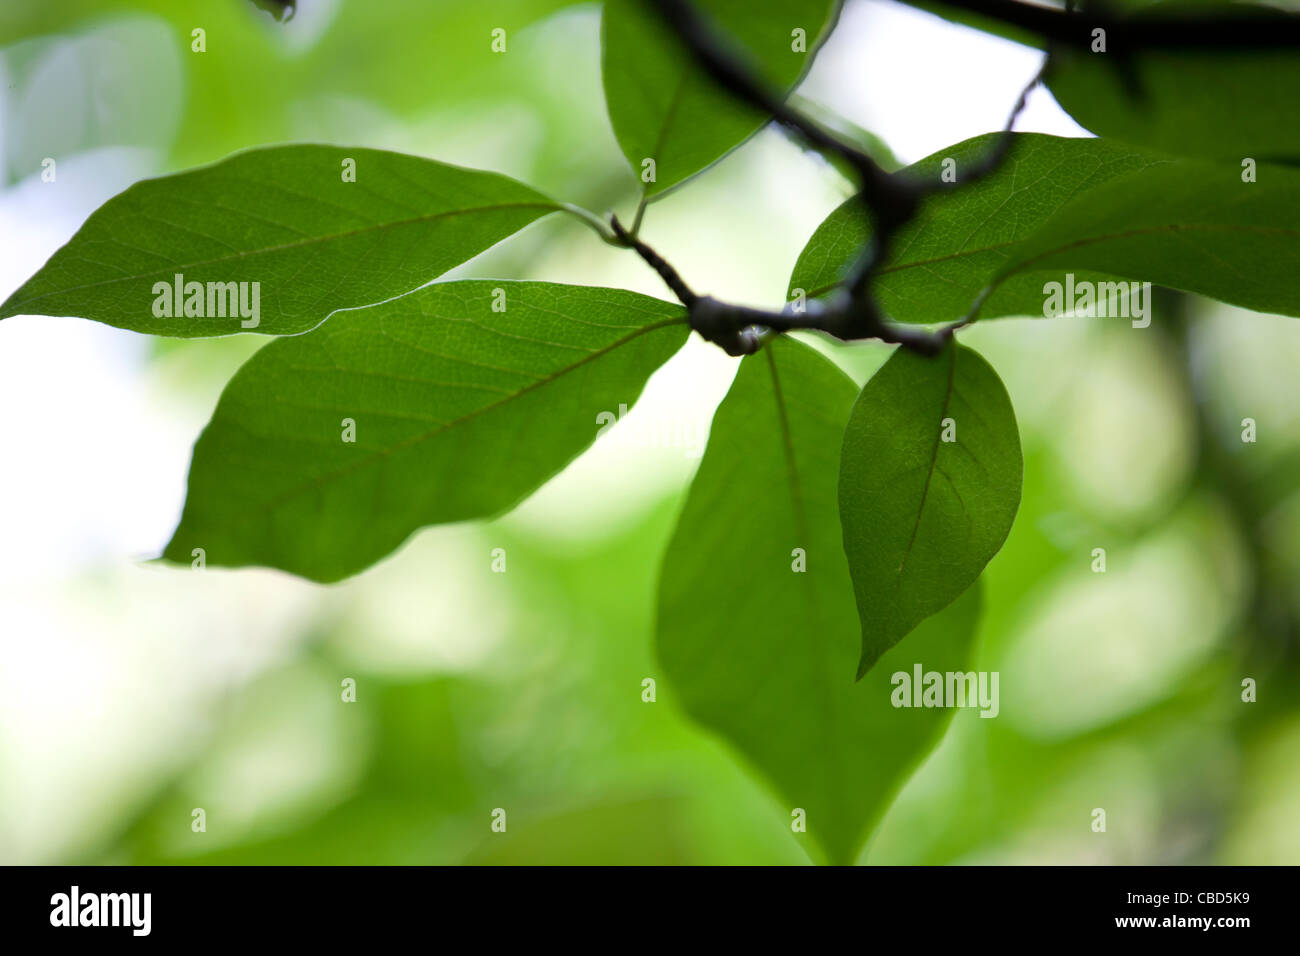 Close-up of leaves on a Magnolia tree - Stock Image